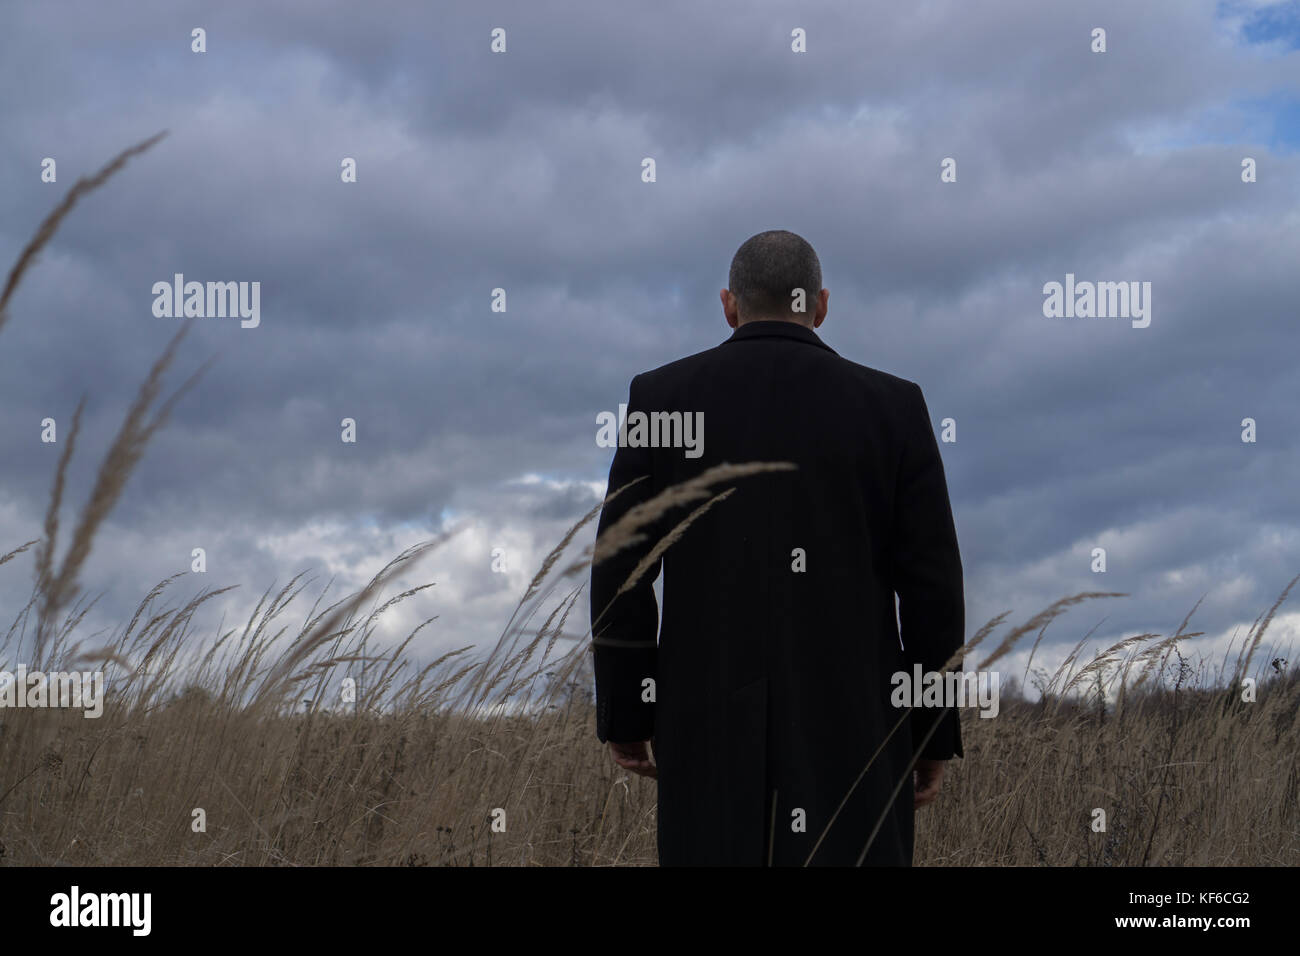 Rear view of a man wearing a coat standing in a field with cloudy sky - Stock Image